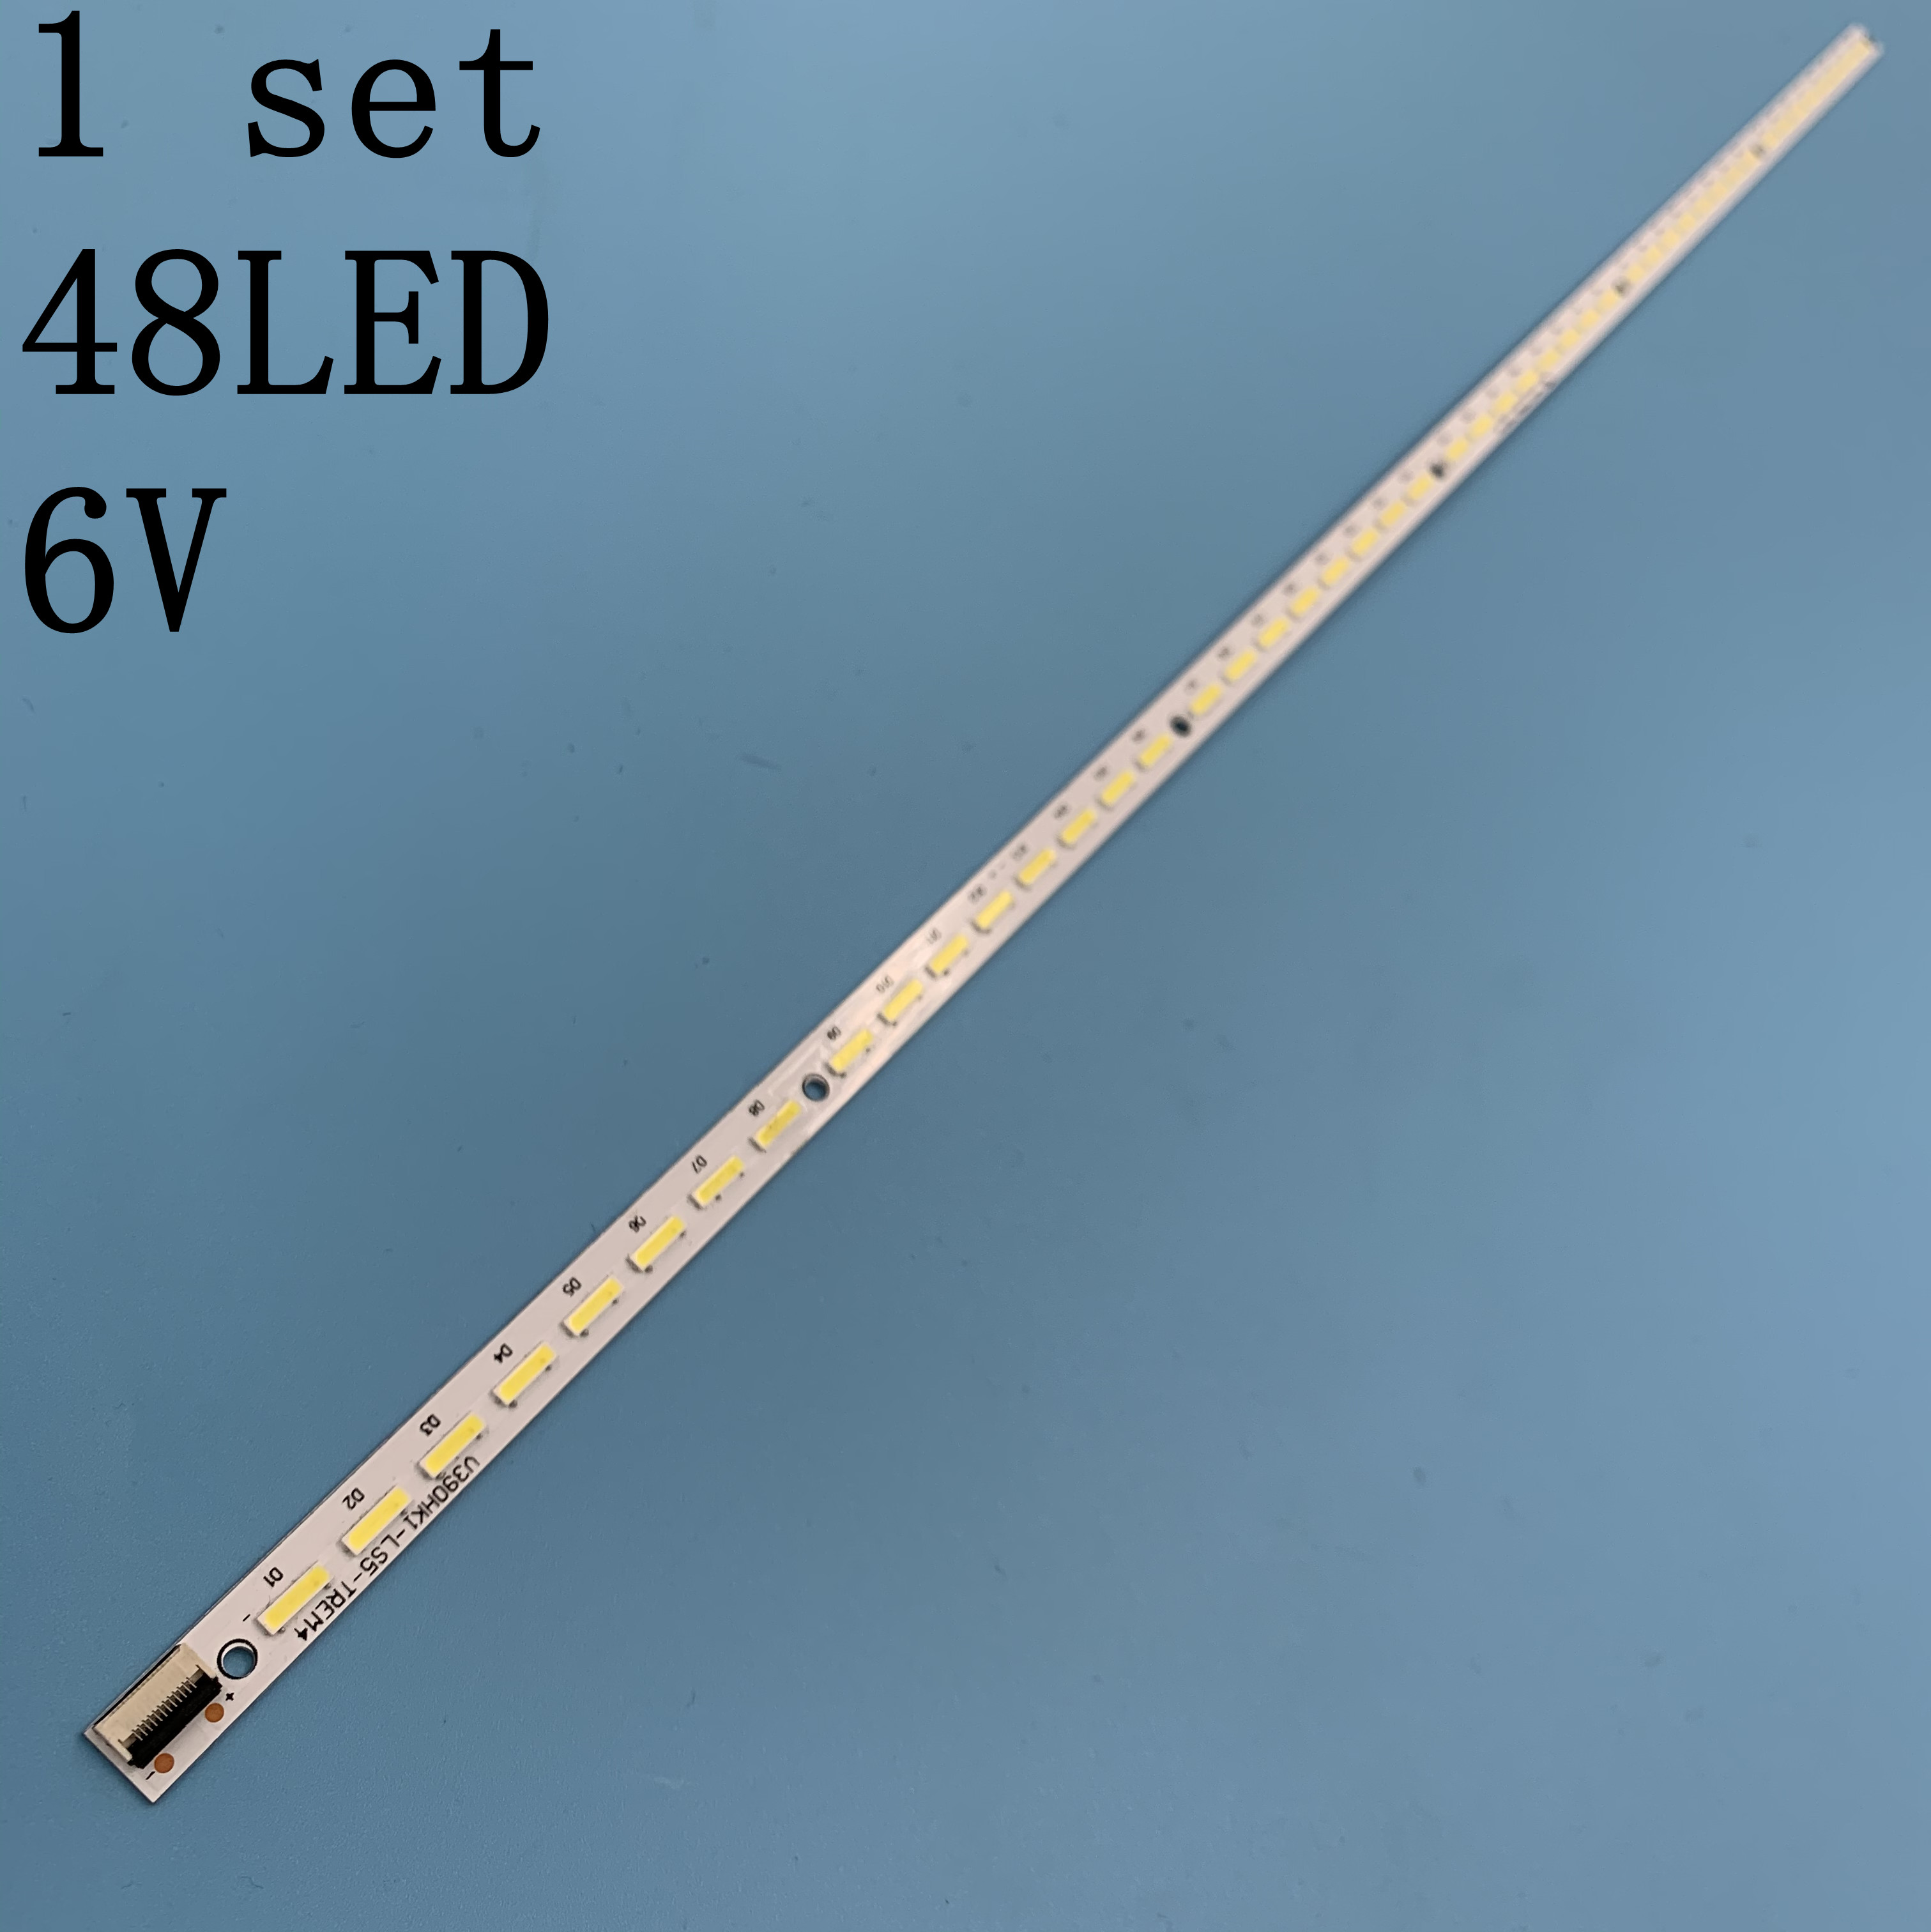 L39E5000 V390HK1-LS5 LED Strip 4A-D069457 V390HK1-LS5-TREW4 (TREM4) 1 Piece=48LED 495MM